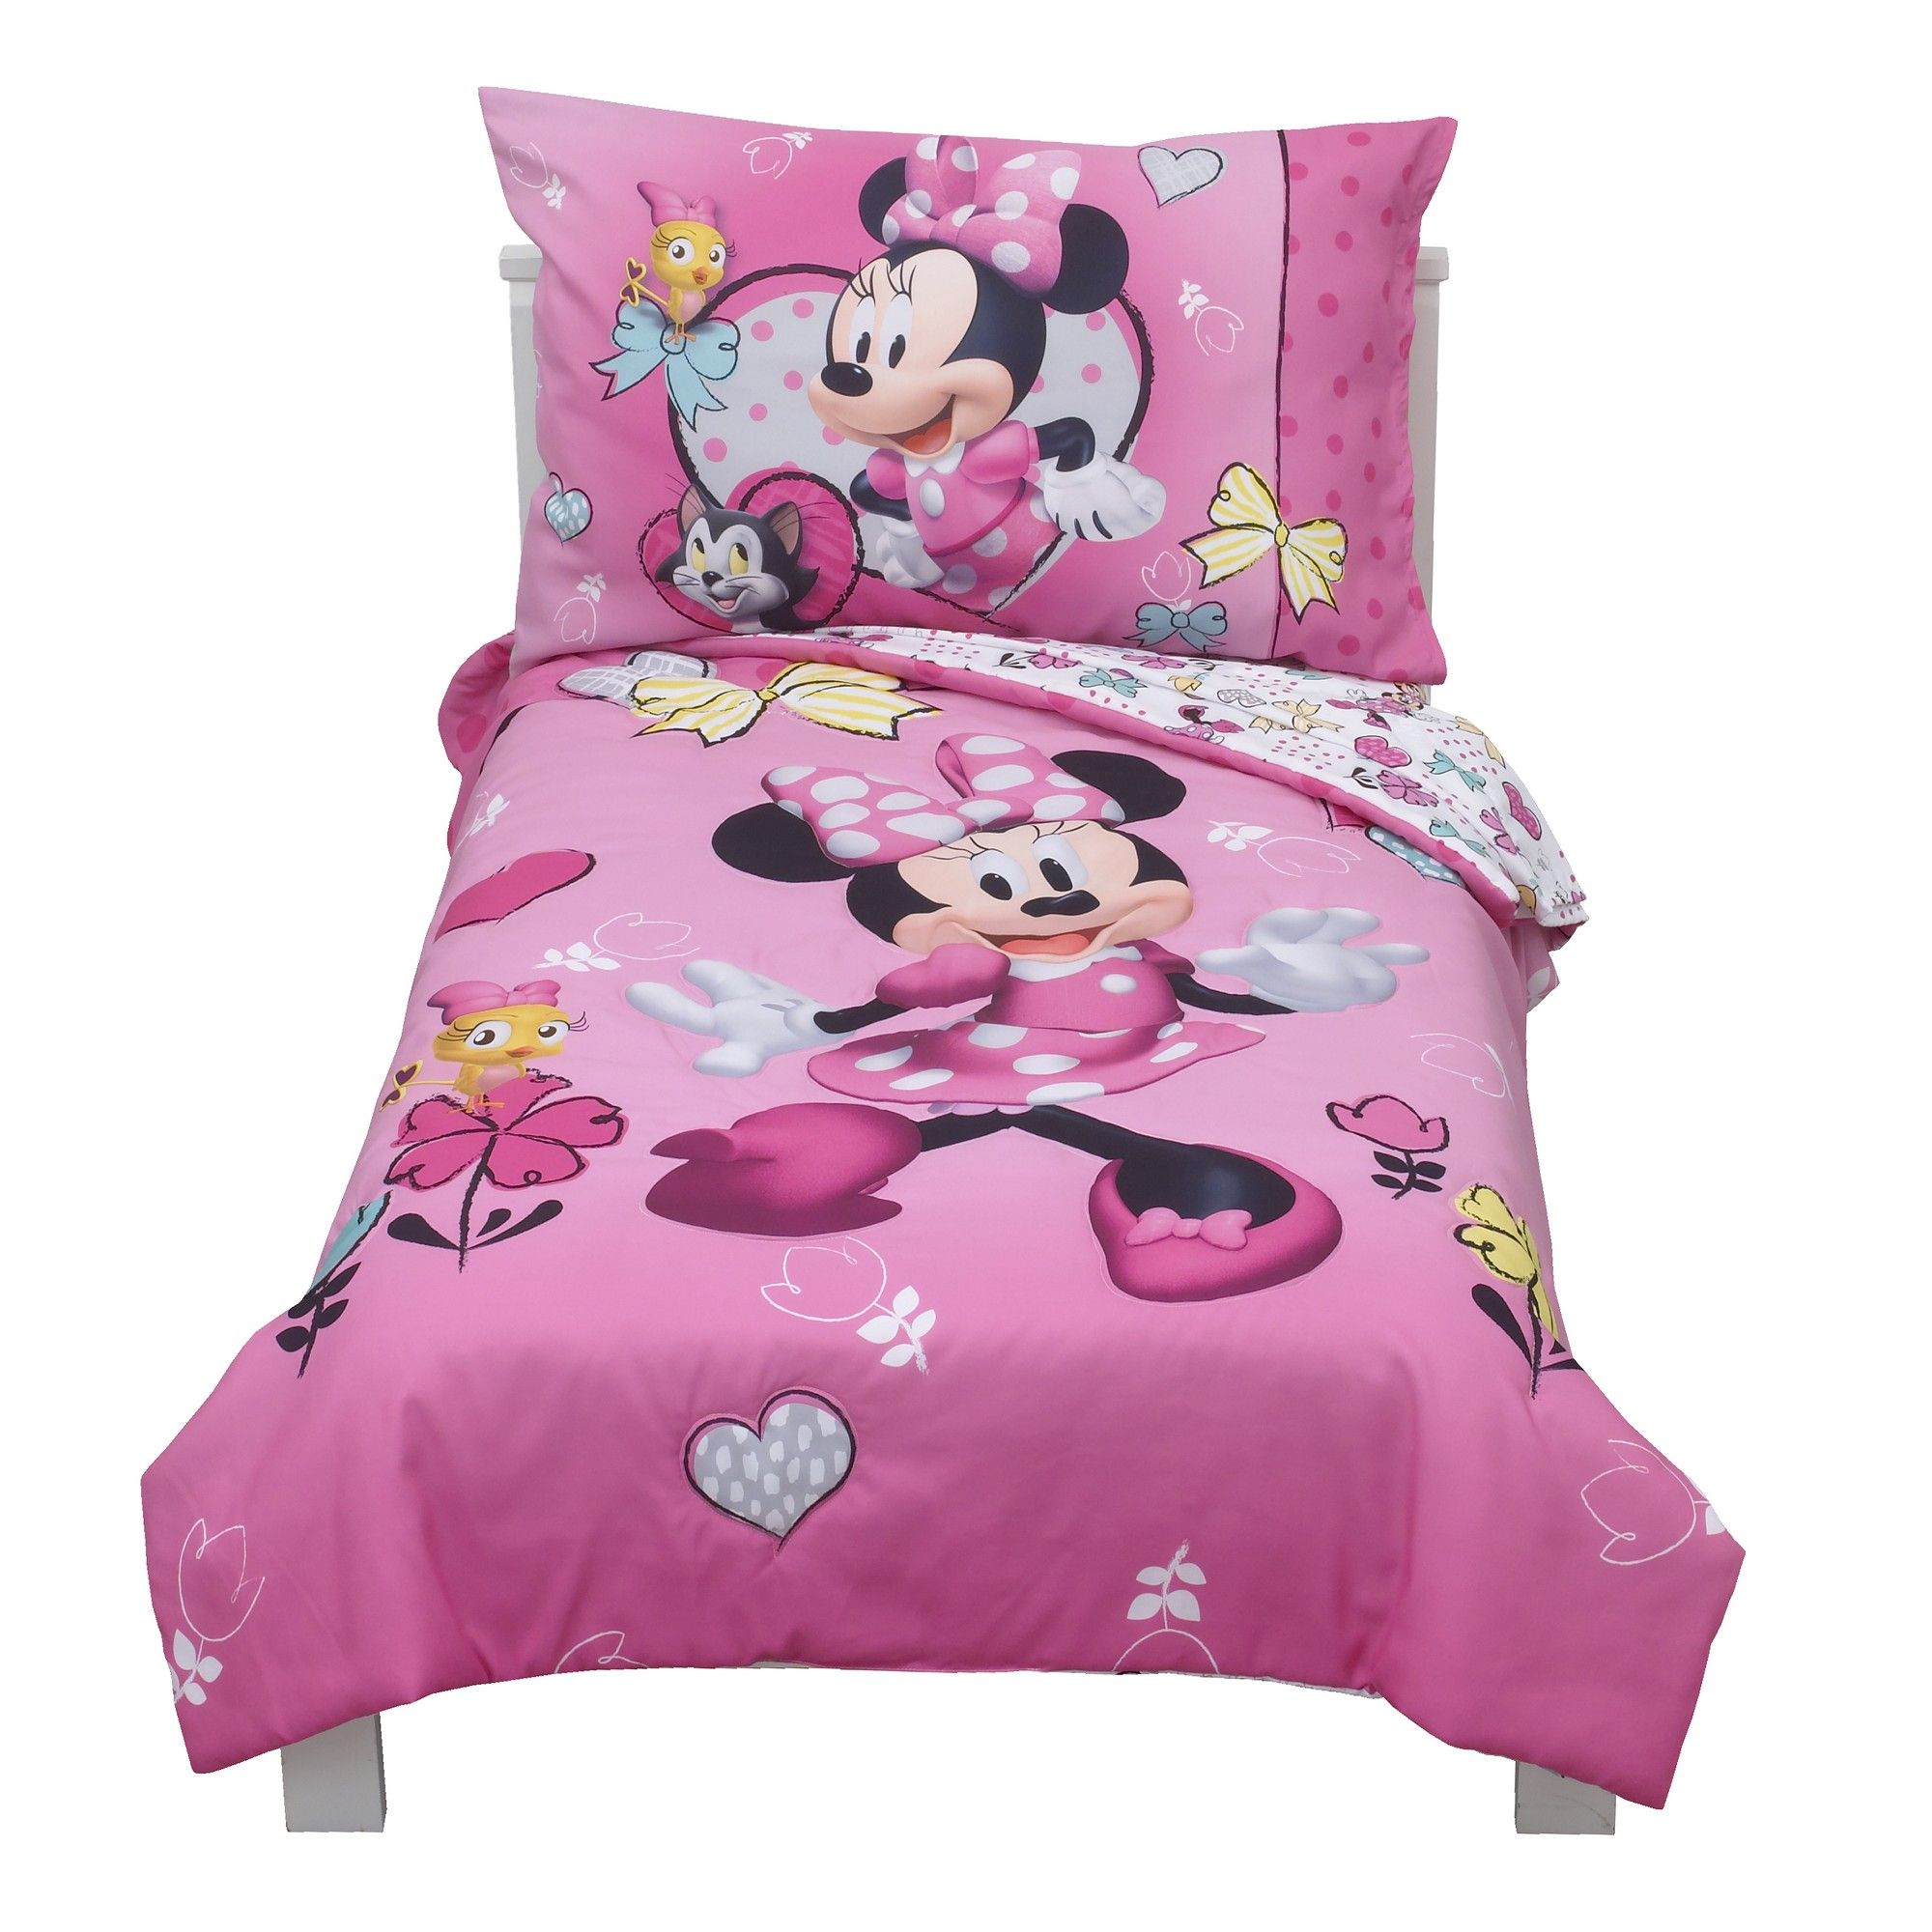 Mickey Mouse & Friends Minnie Mouse Toddler 4pc Bedding Sets, Pink